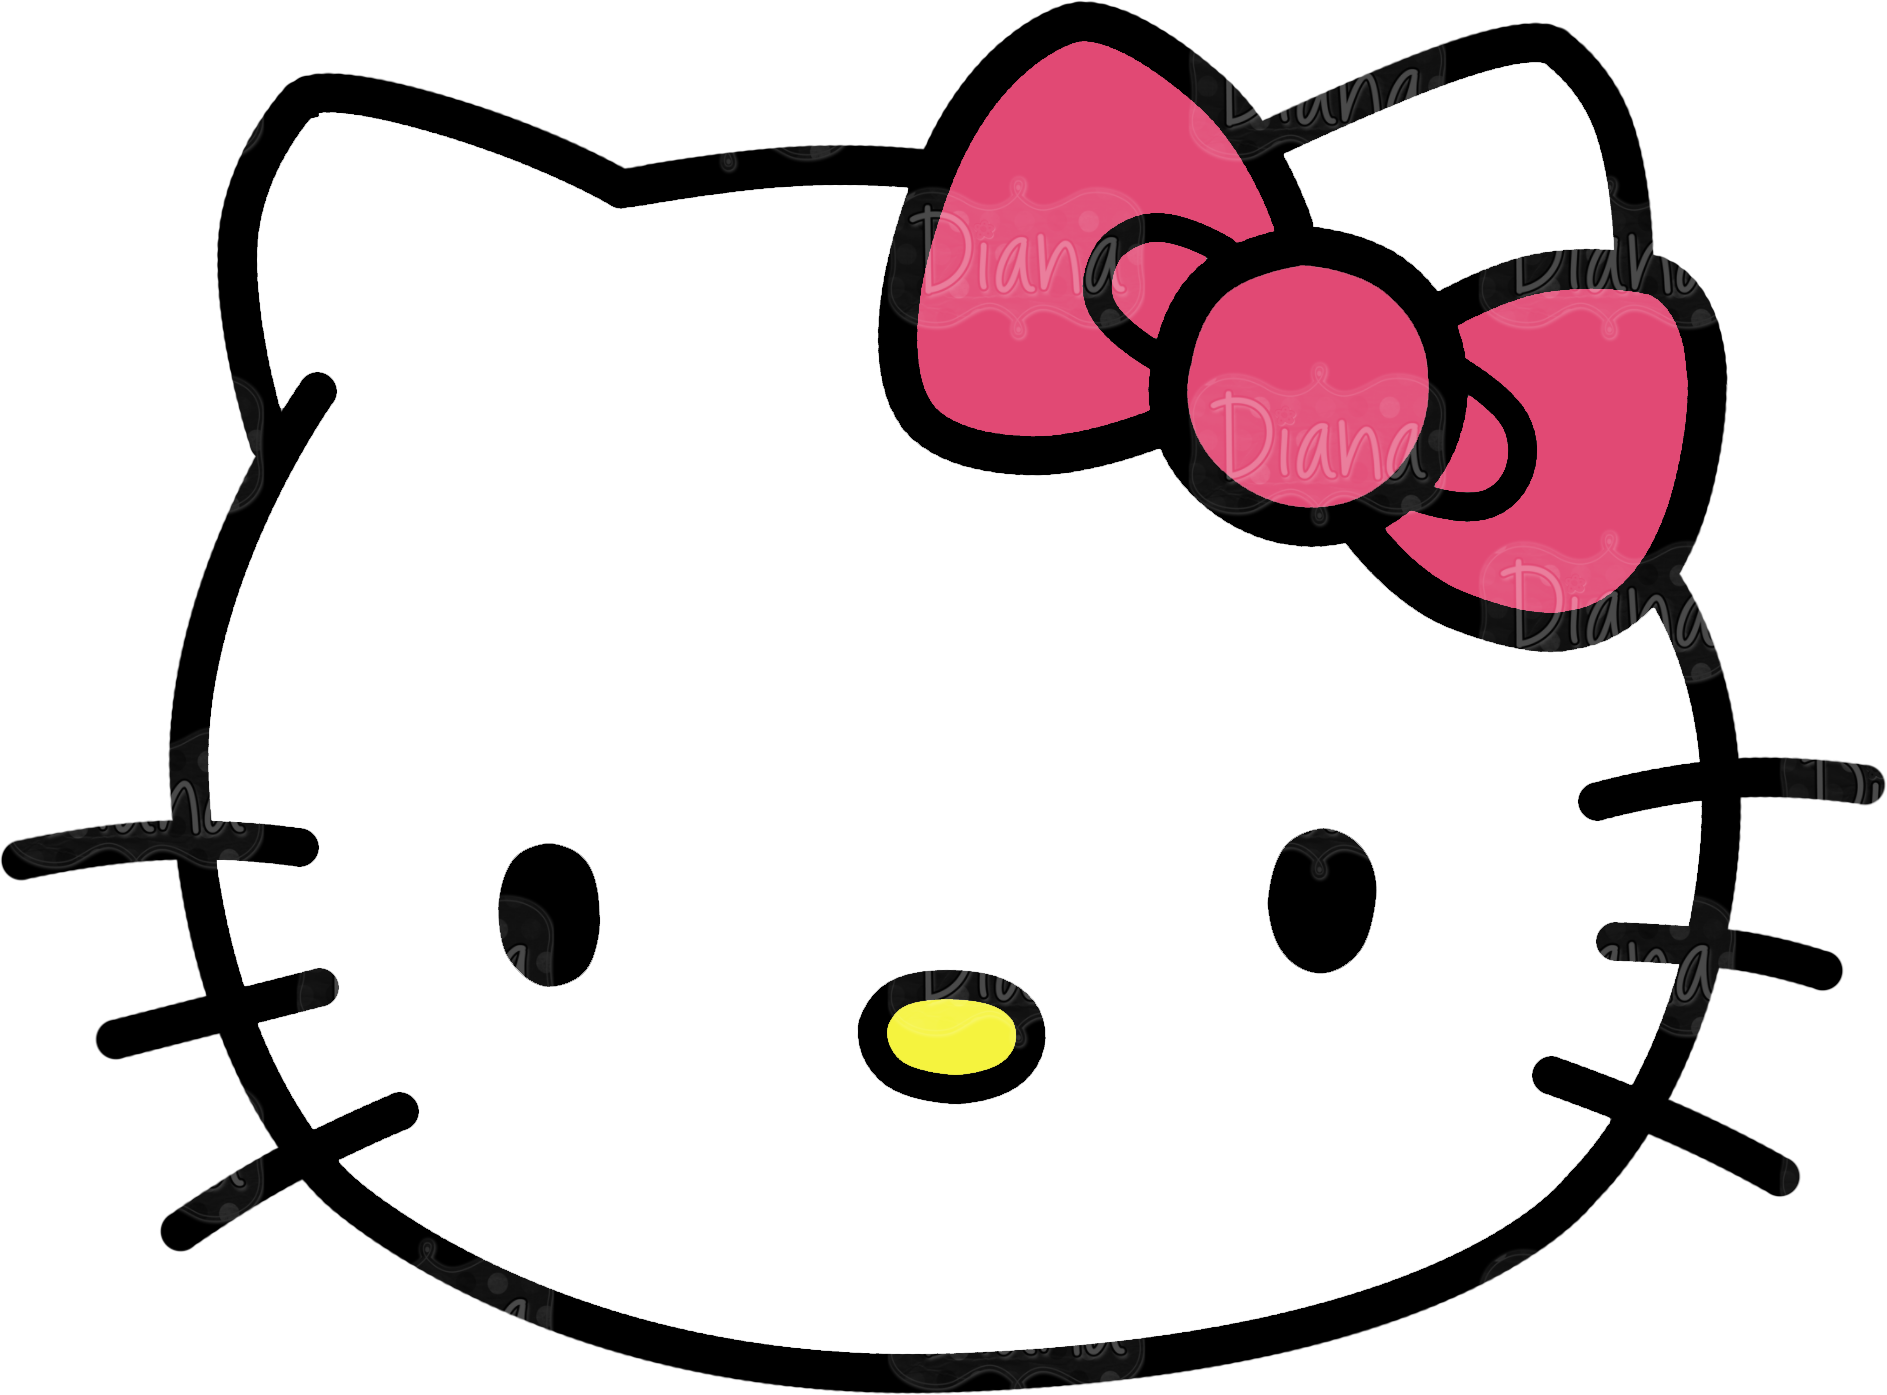 Free Kitty Head Cliparts, Download Free Clip Art, Free Clip Art on.